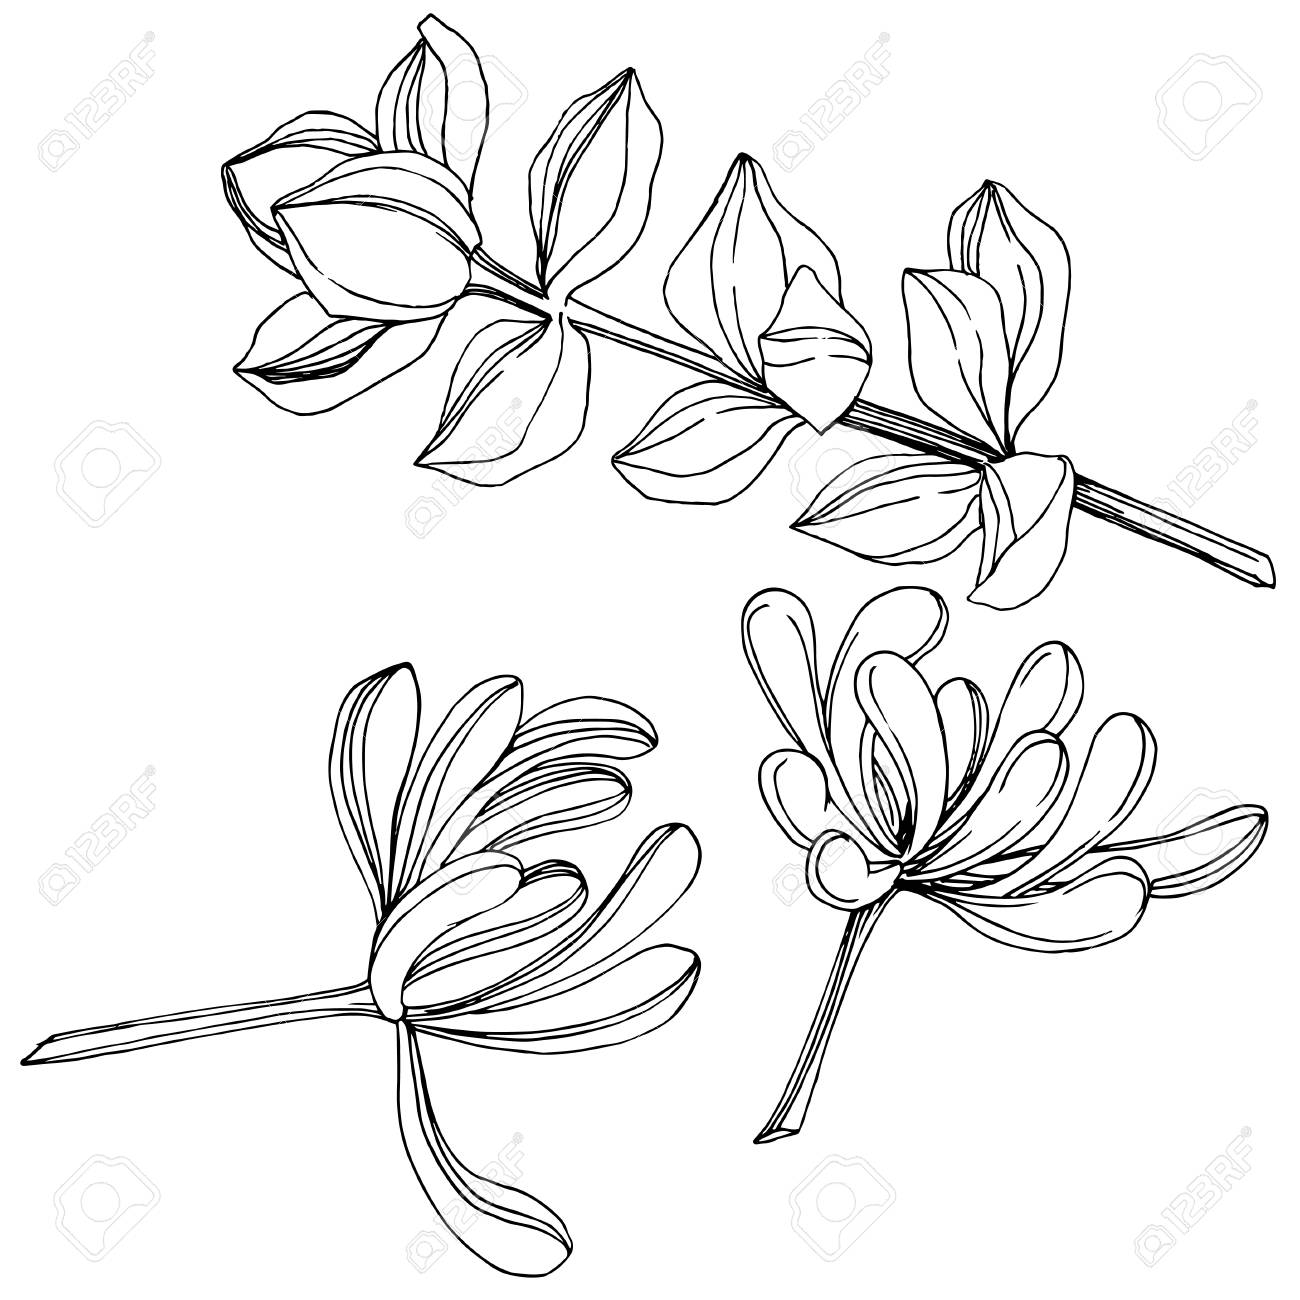 Vector Succulent floral botanical flower. Wild spring leaf wildflower isolated. Black and white engraved ink art. Isolated succulents illustration element on white background. - 126068129